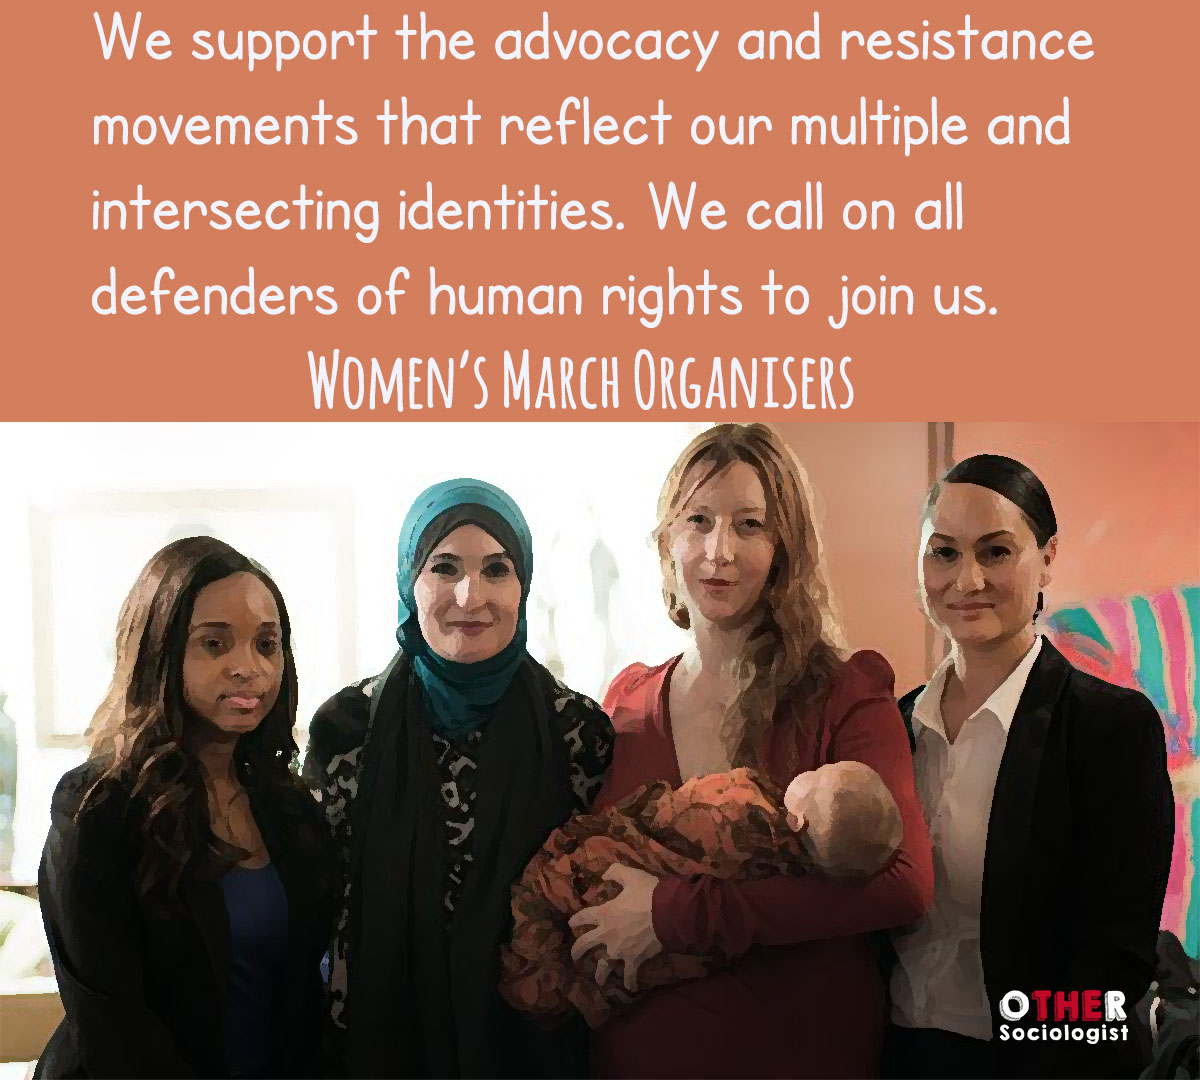 We support the advocacy and resistance movements that reflect our multiple and intersecting identities. We call on all defenders of human rights to join us